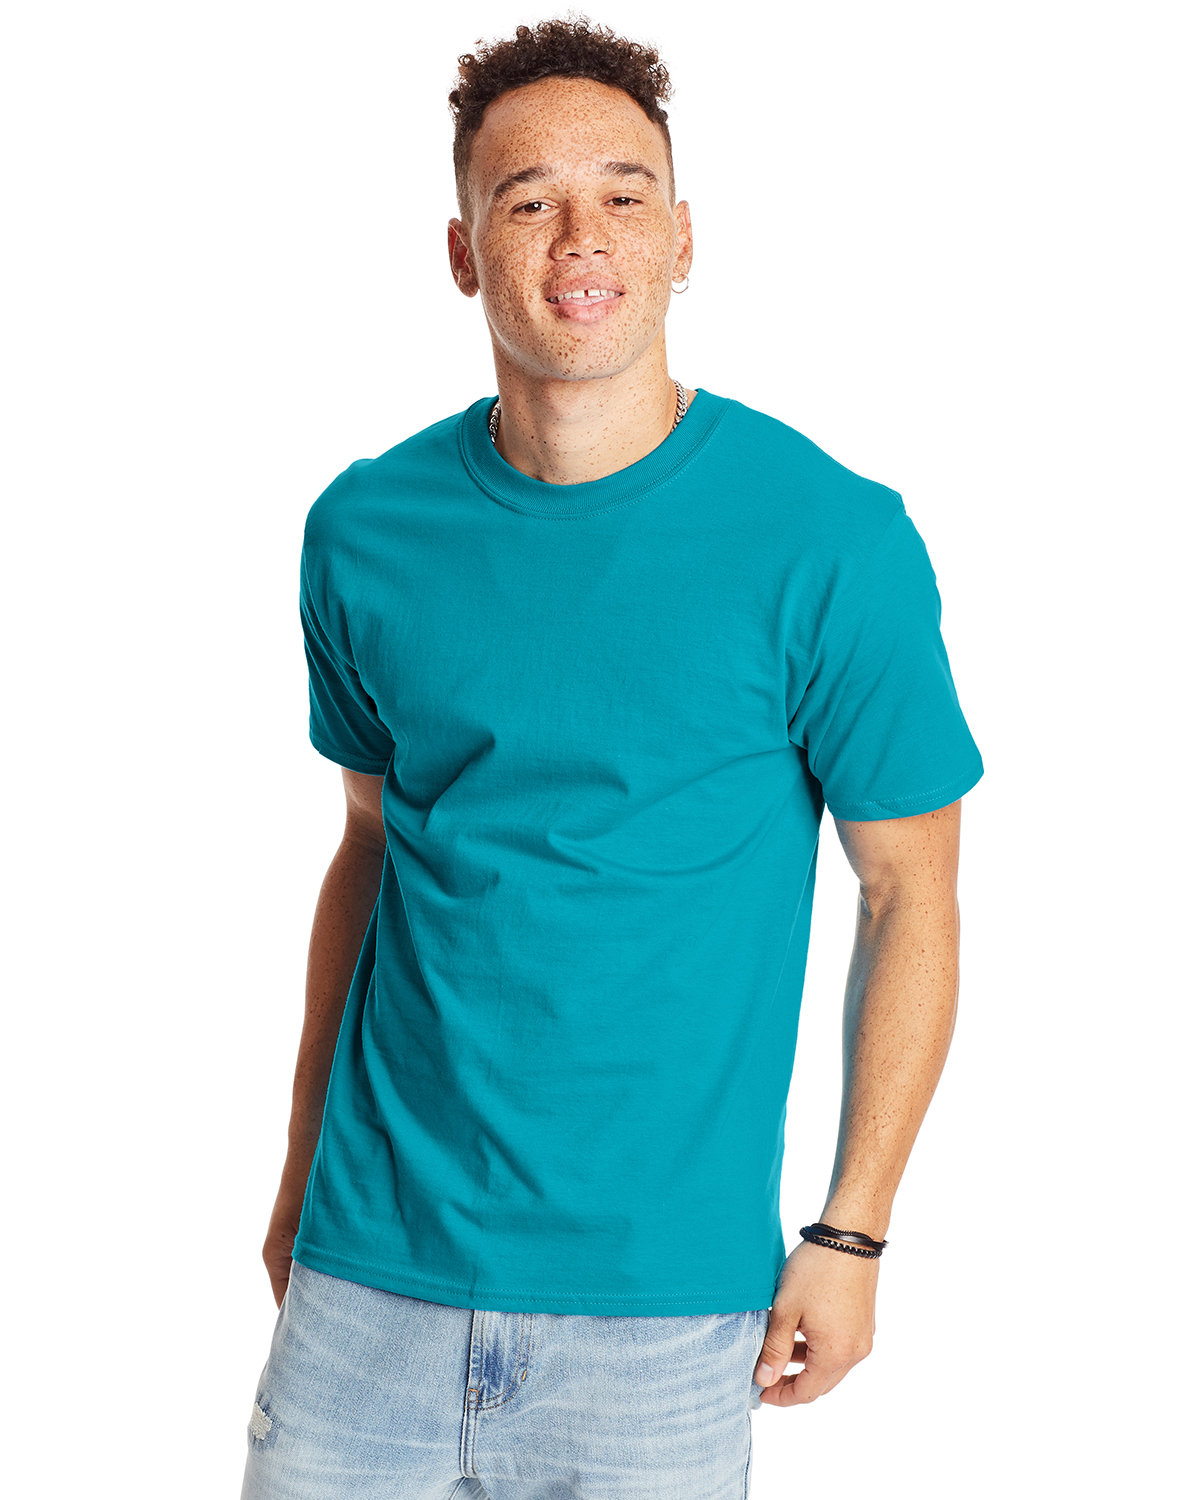 Hanes Unisex Beefy-T® T-Shirt TEAL